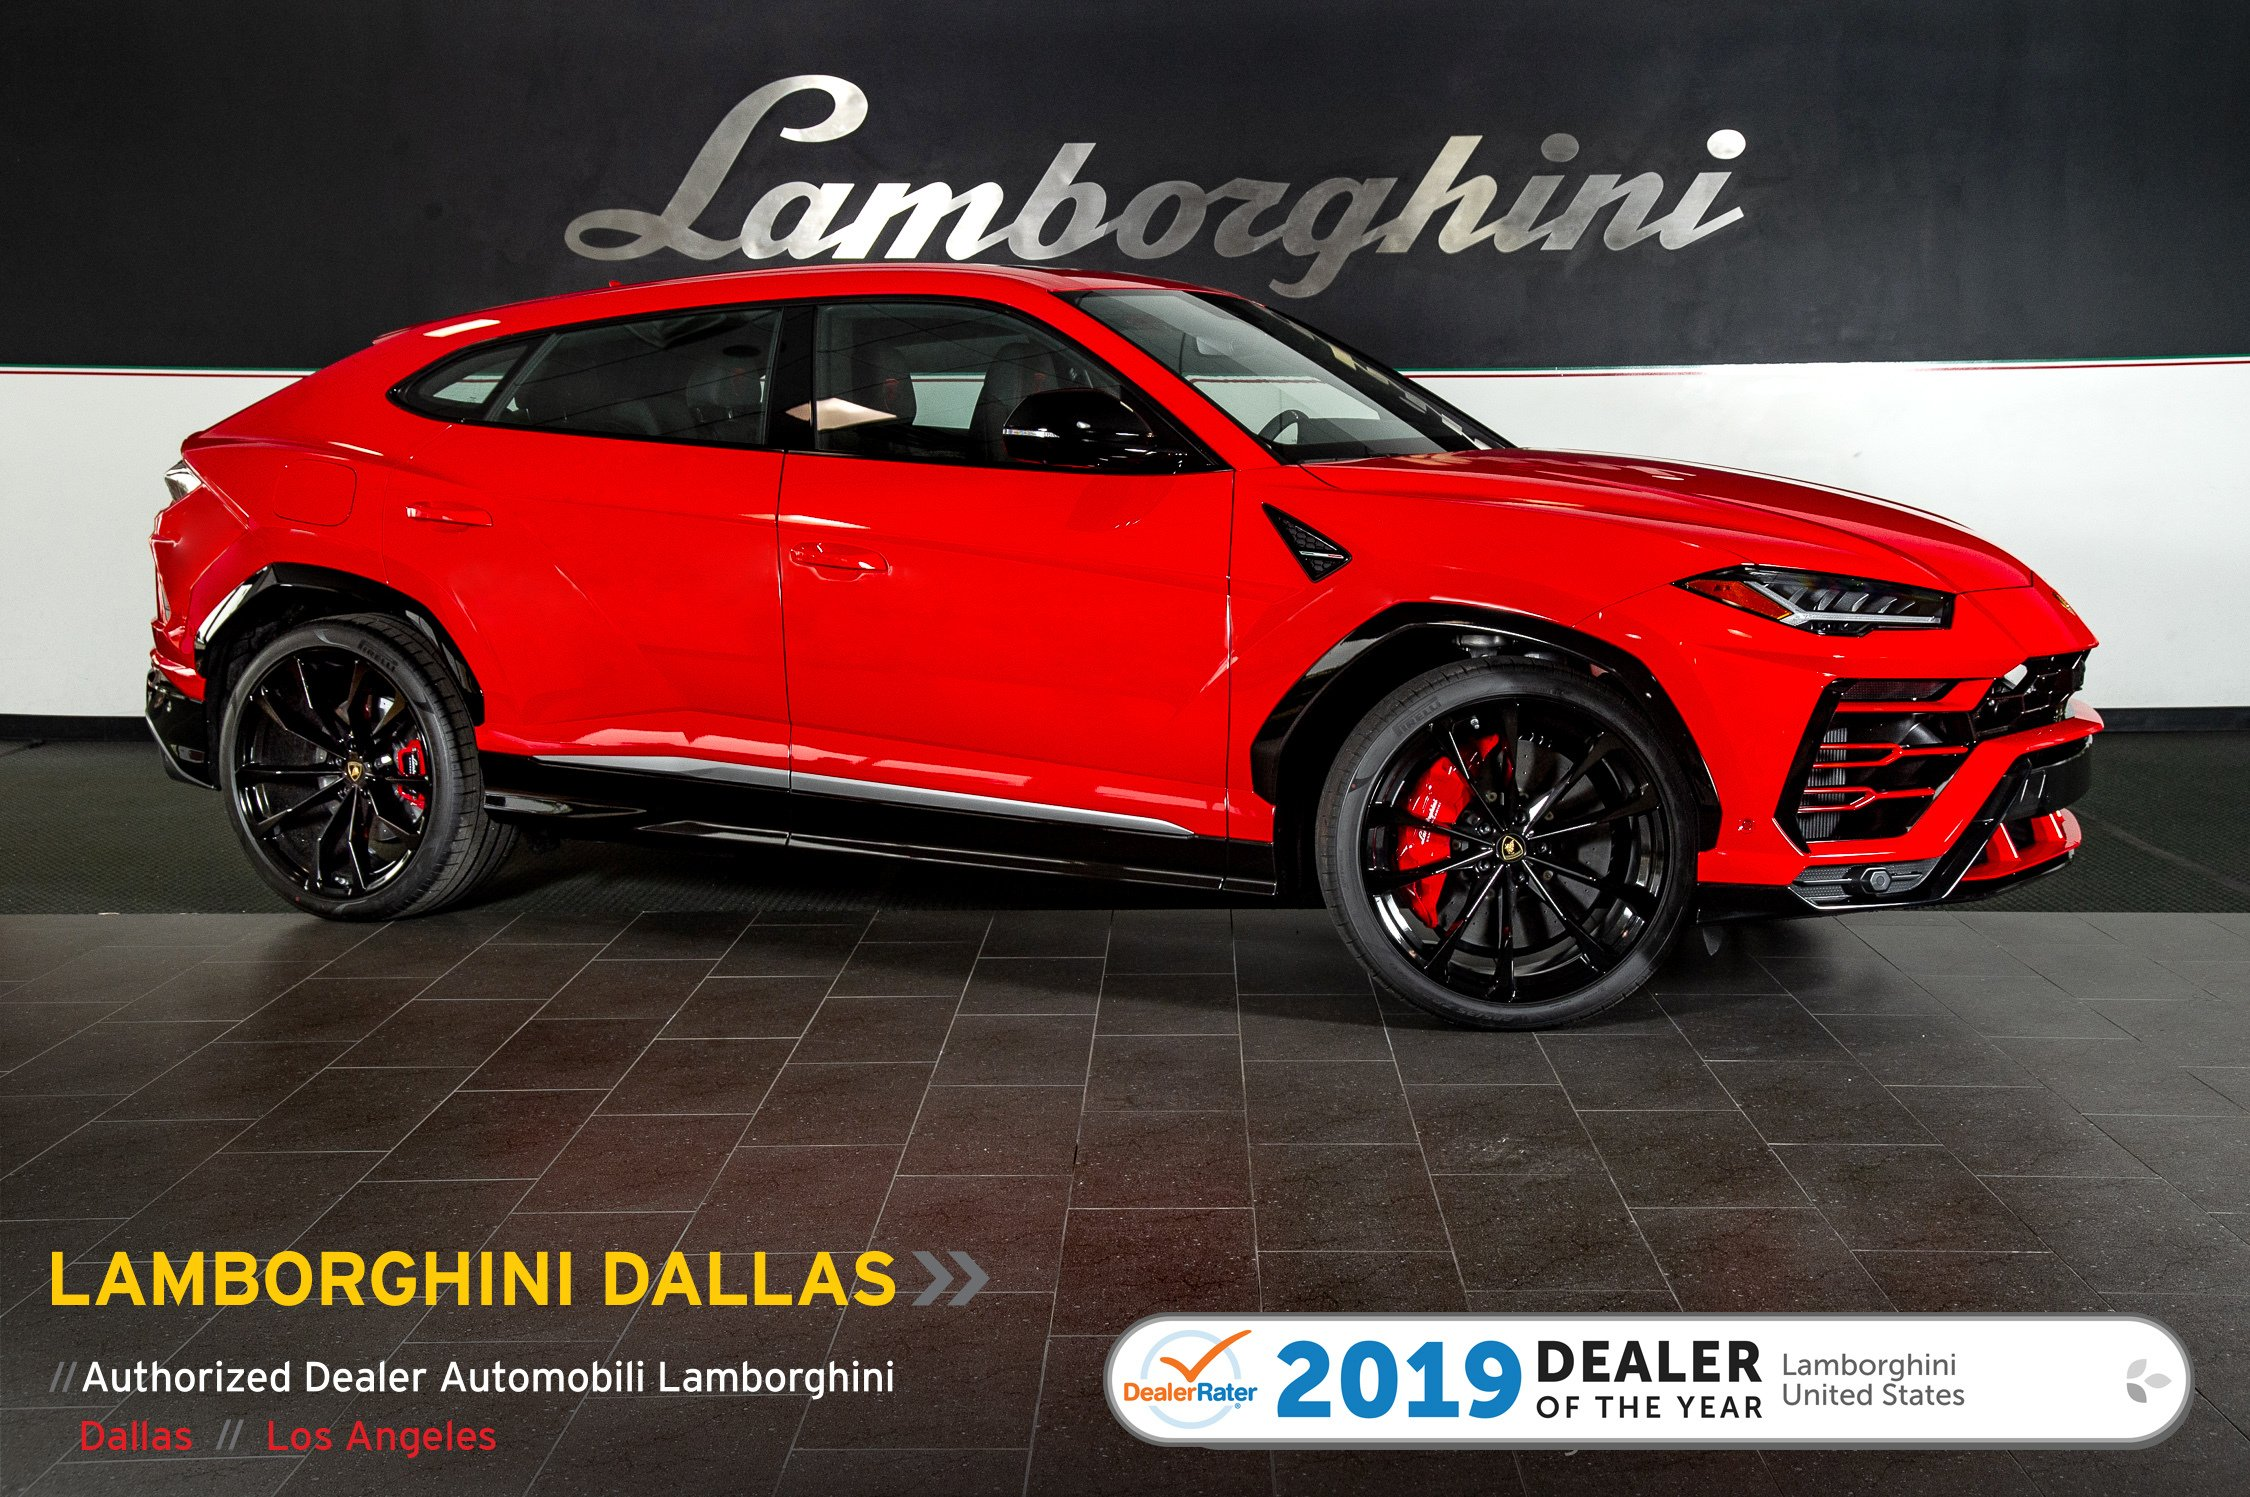 used 2019 lamborghini urus for sale richardson tx stock lt1293 vin zpbua1zl9kla04219 used 2019 lamborghini urus for sale richardson tx stock lt1293 vin zpbua1zl9kla04219